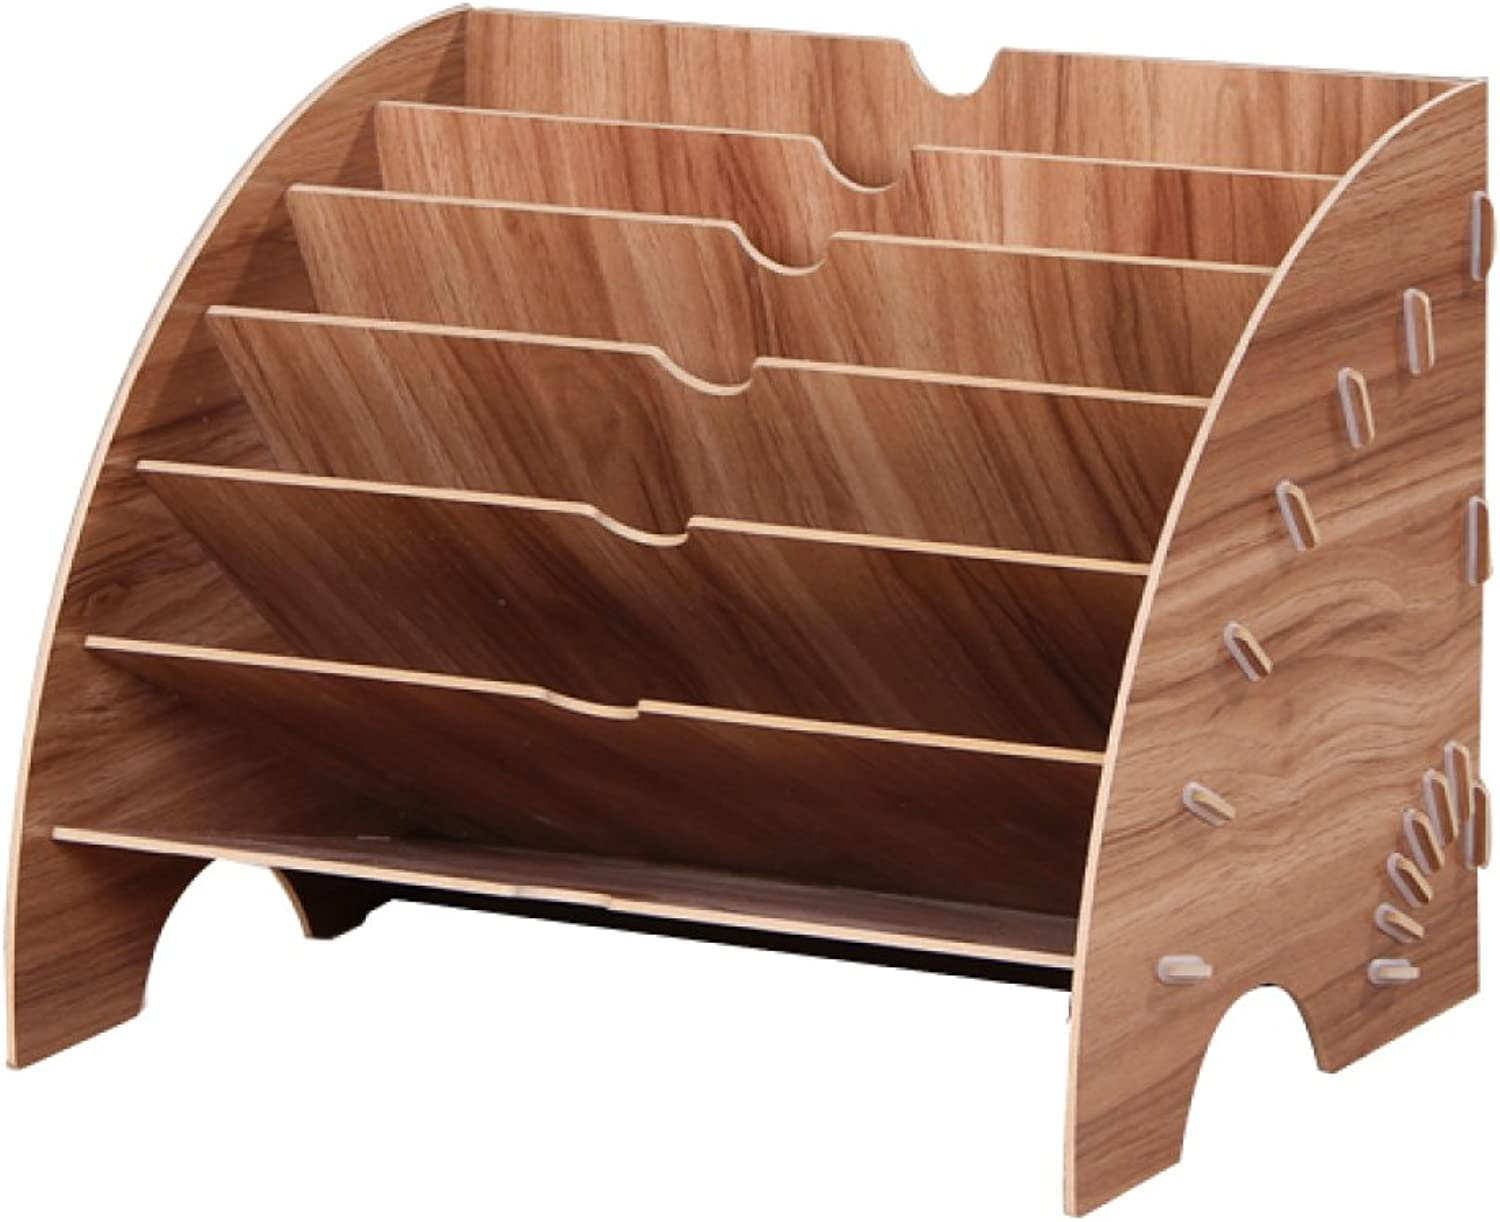 Bookcase by Fan-Shaped Data Holders Wooden Document Holders Office Supplies Desktop Magazine Storage Shelves,Woodcolor